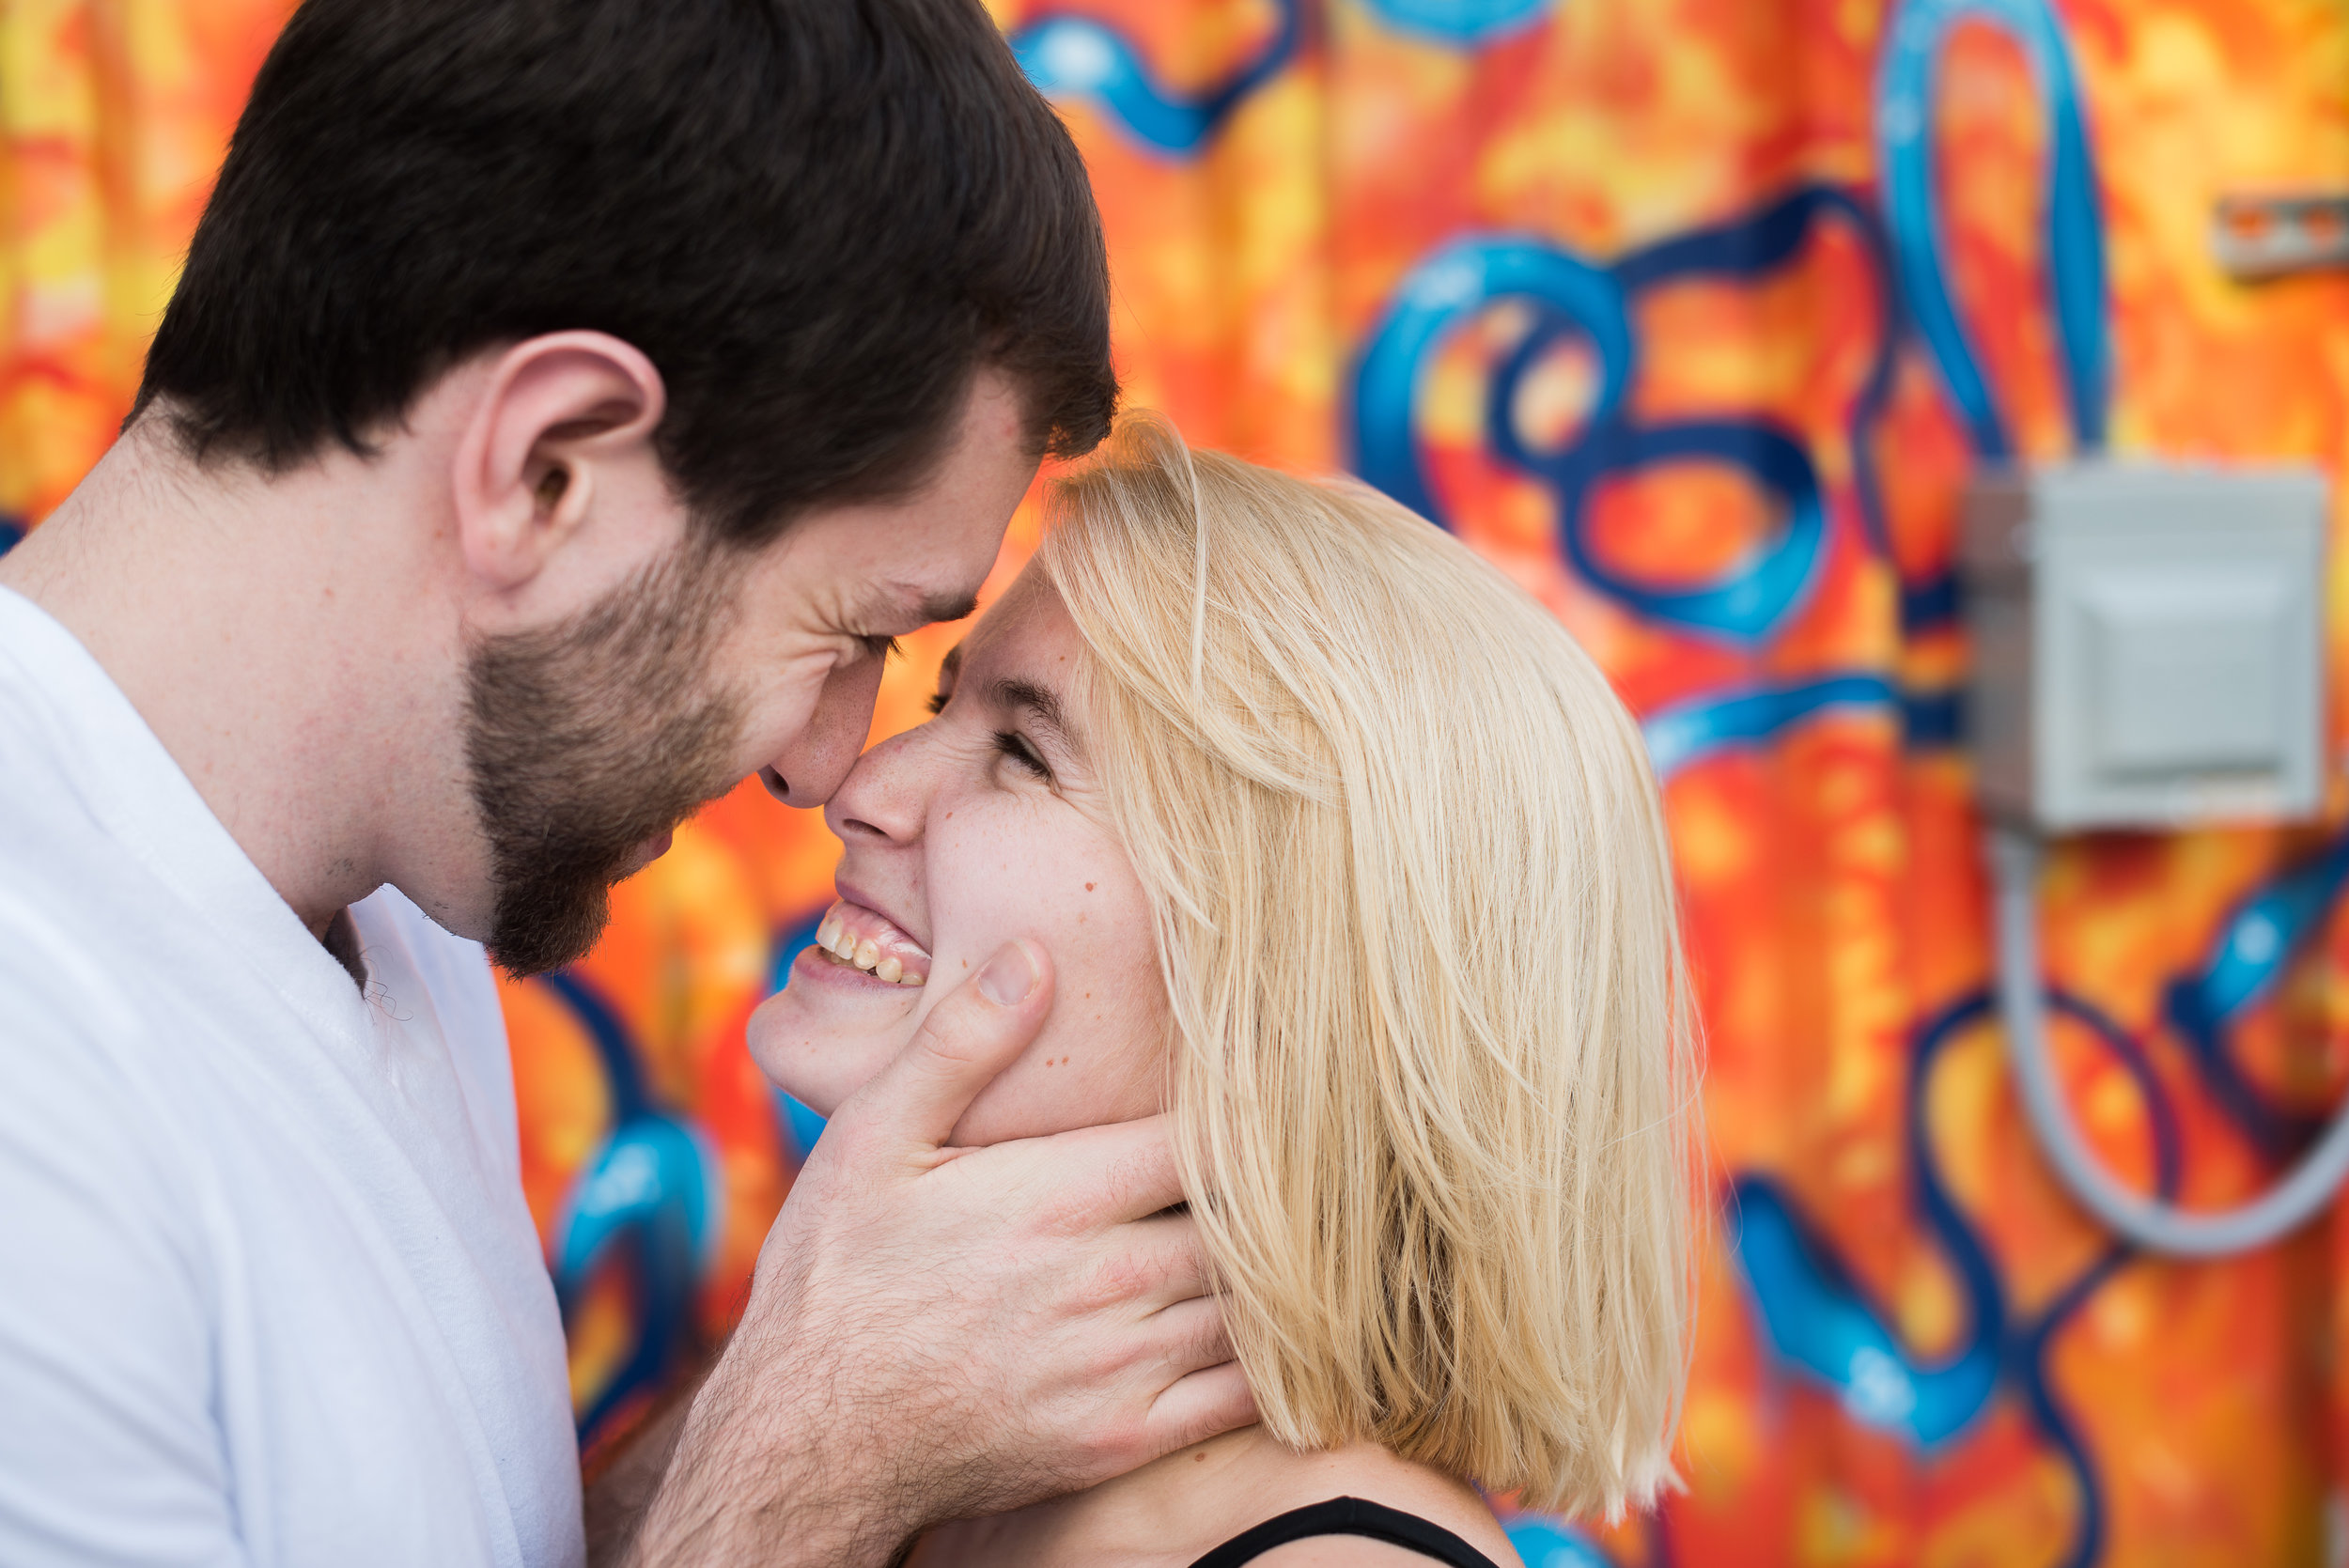 Torrie and Nick Engagement Session at Vic Mathias Shores Austin Texas-51.JPG